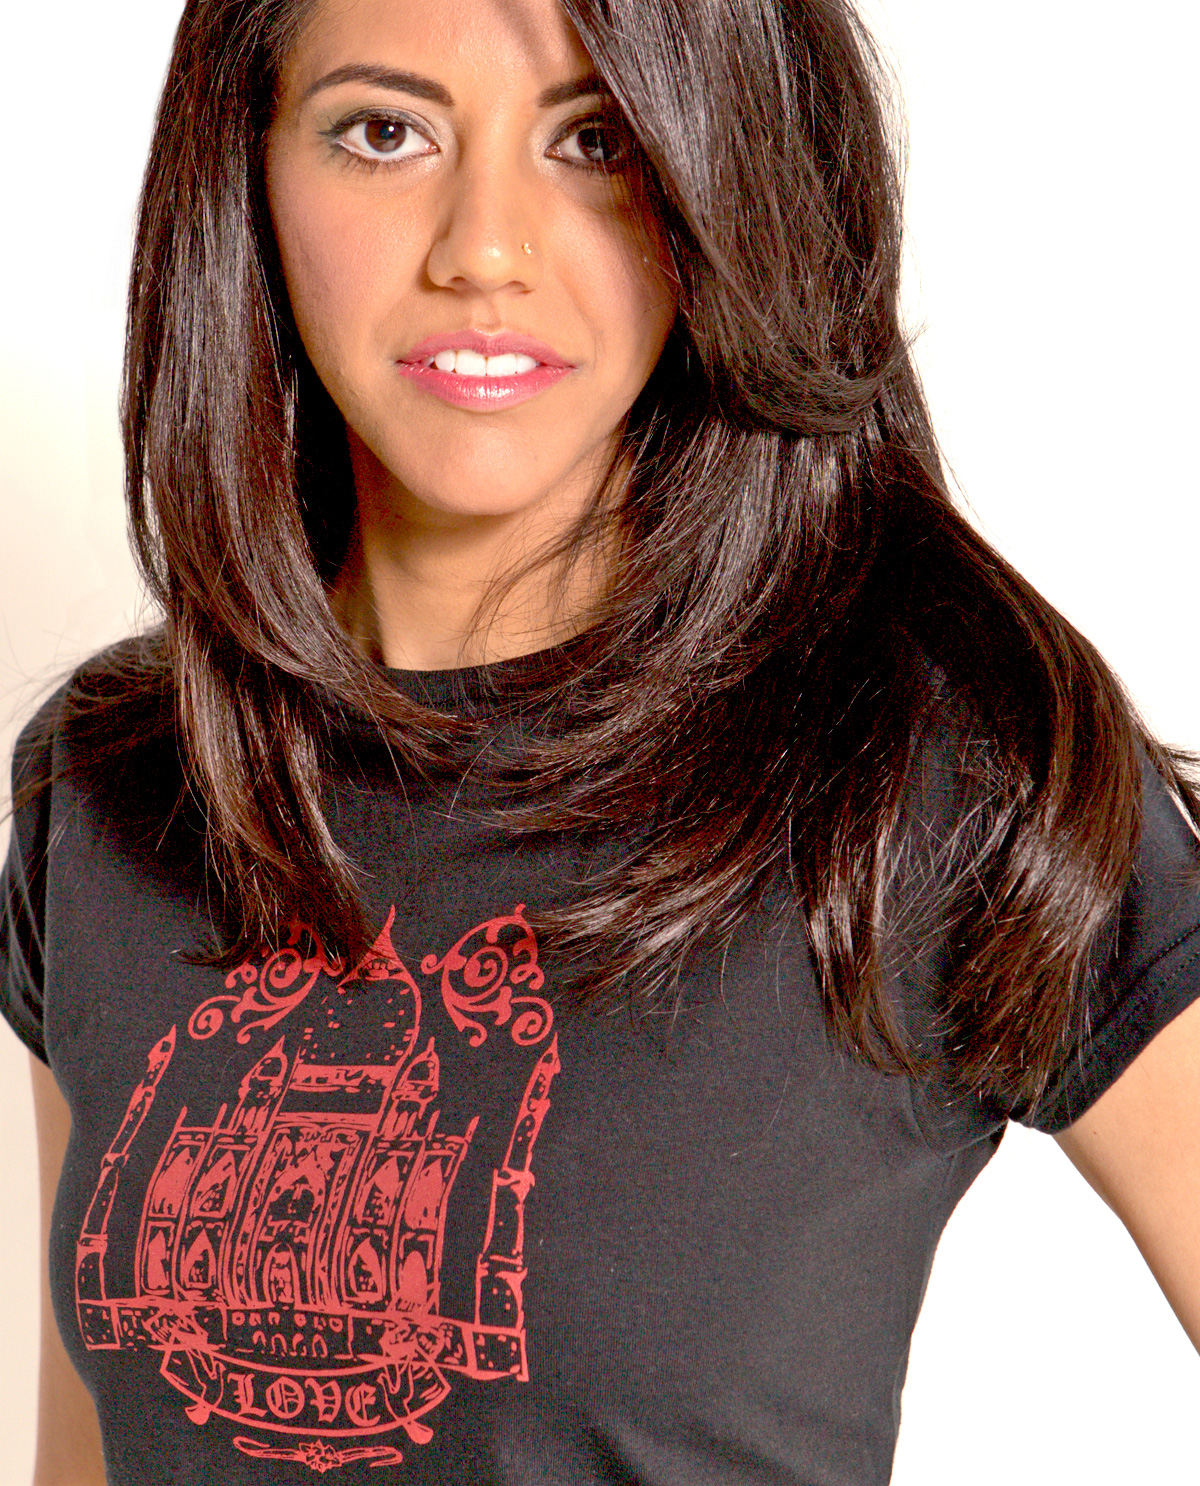 South Asian female model wearing black fitted graphic design t.shirt with image of Taj Mahal on front. Designed by Brown Man Clothing Co.